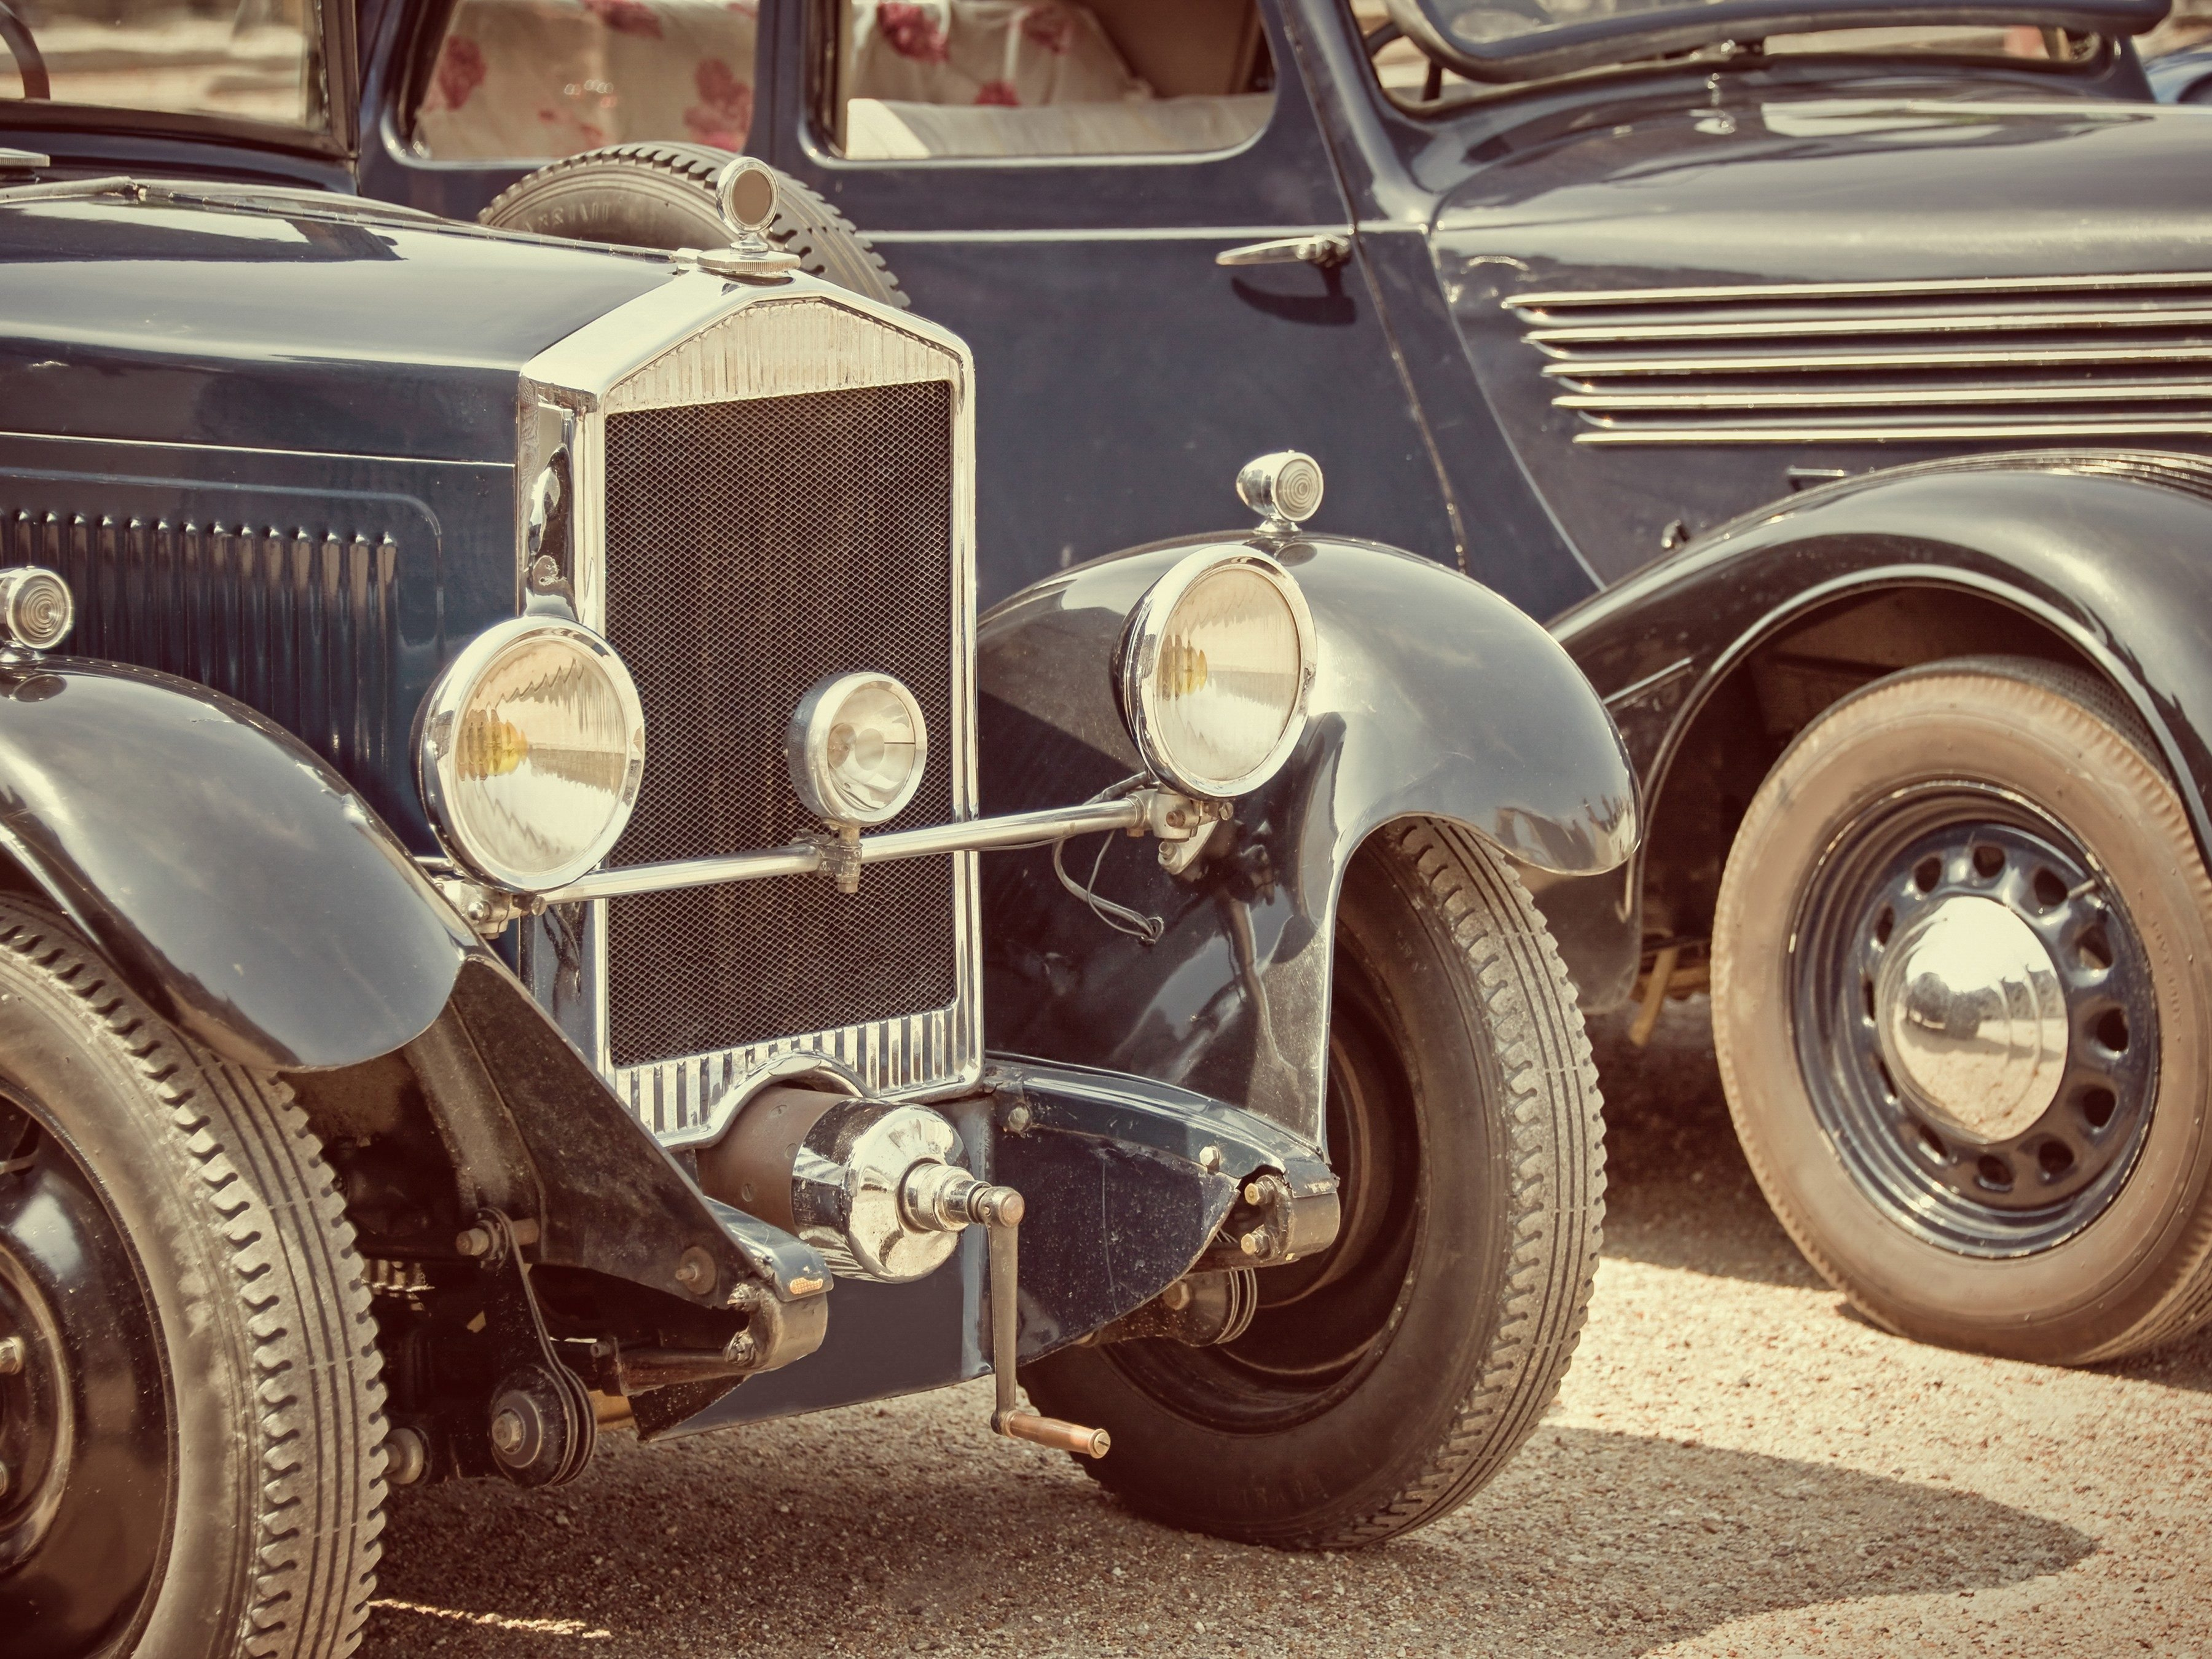 2. Classic Car Database